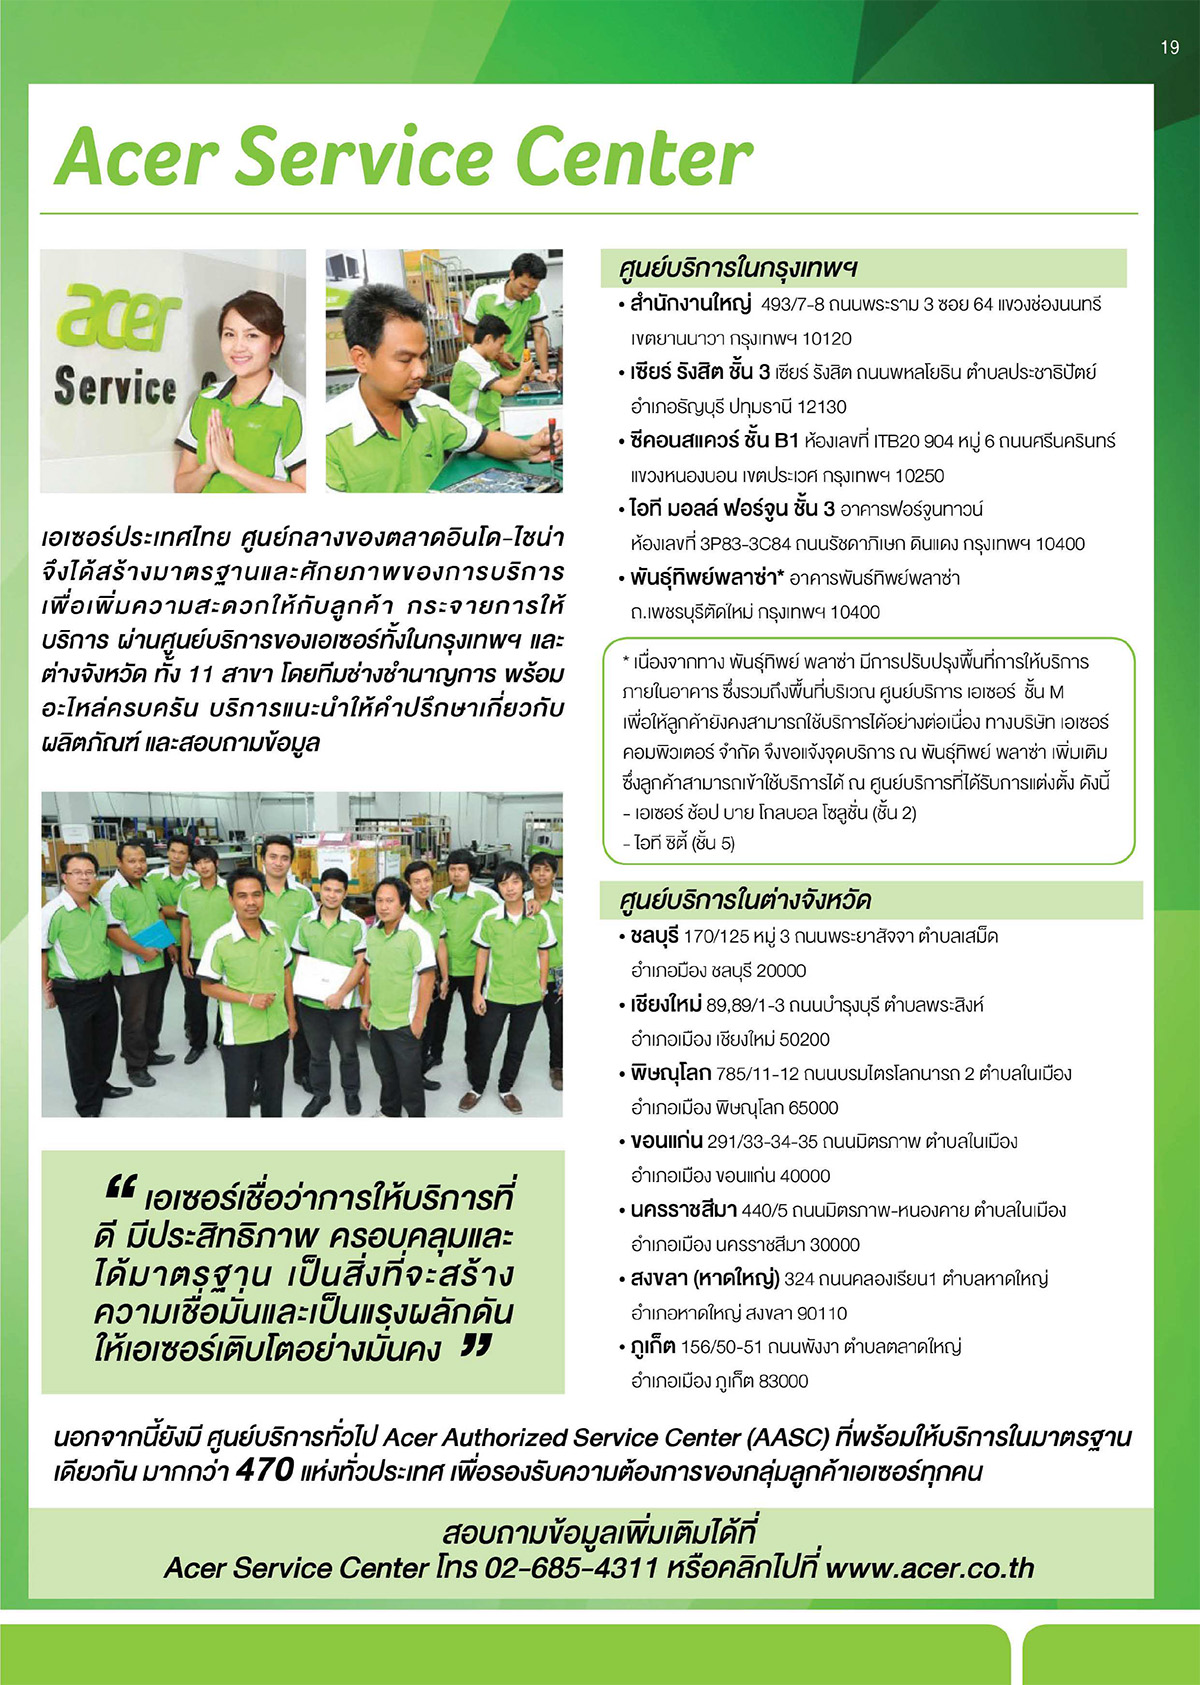 Full page photo